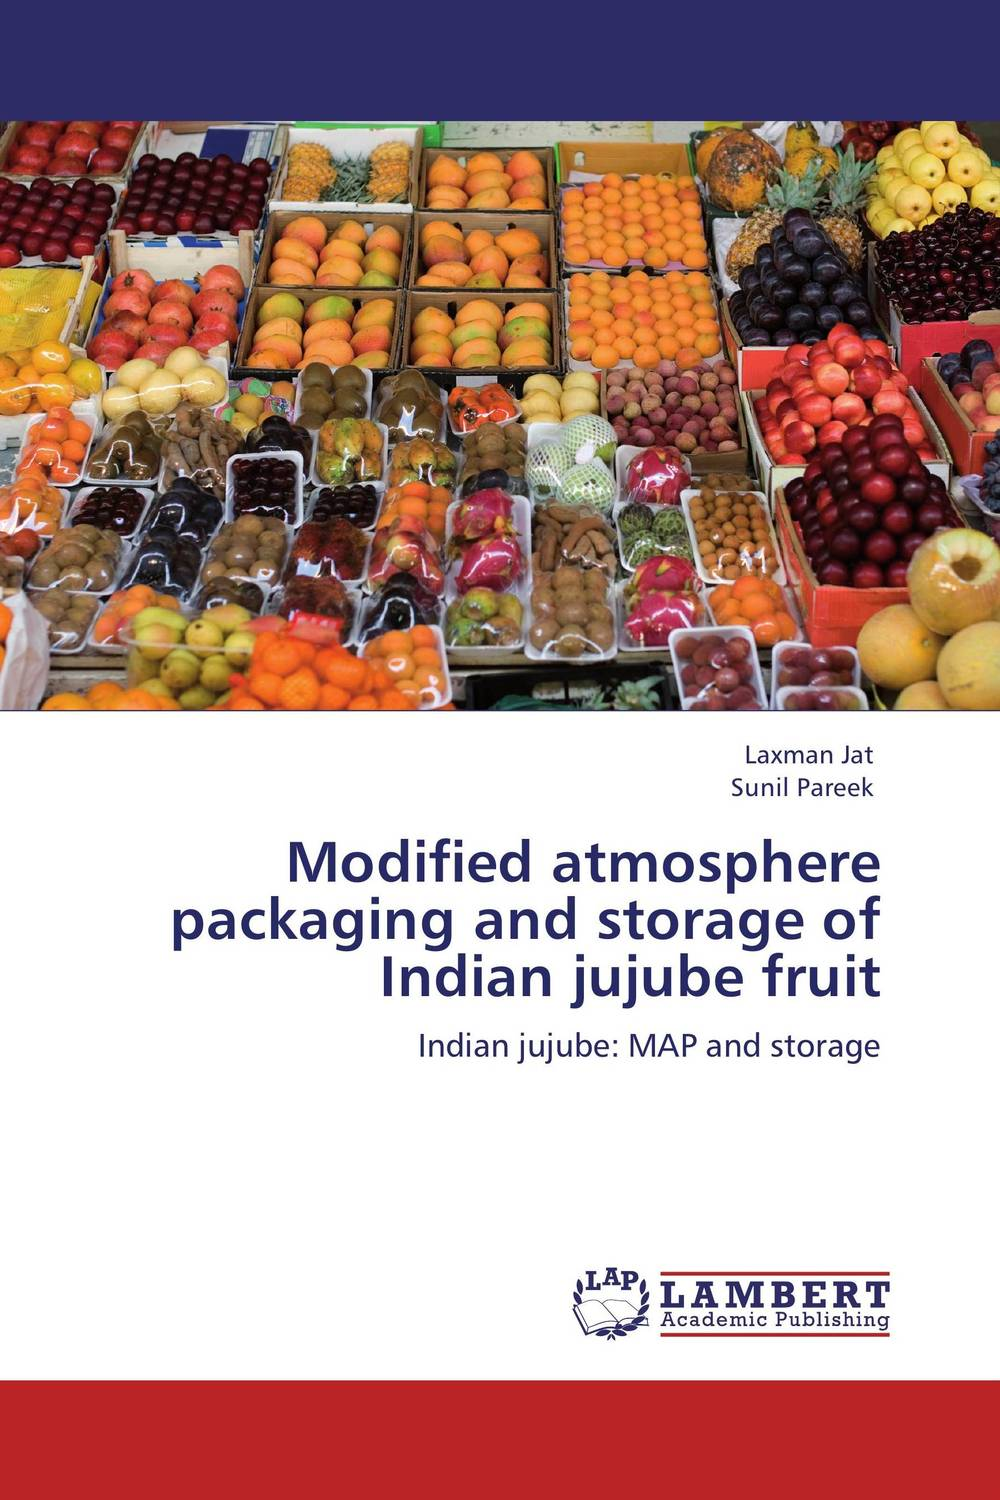 Modified atmosphere packaging and storage of Indian jujube fruit томас драт